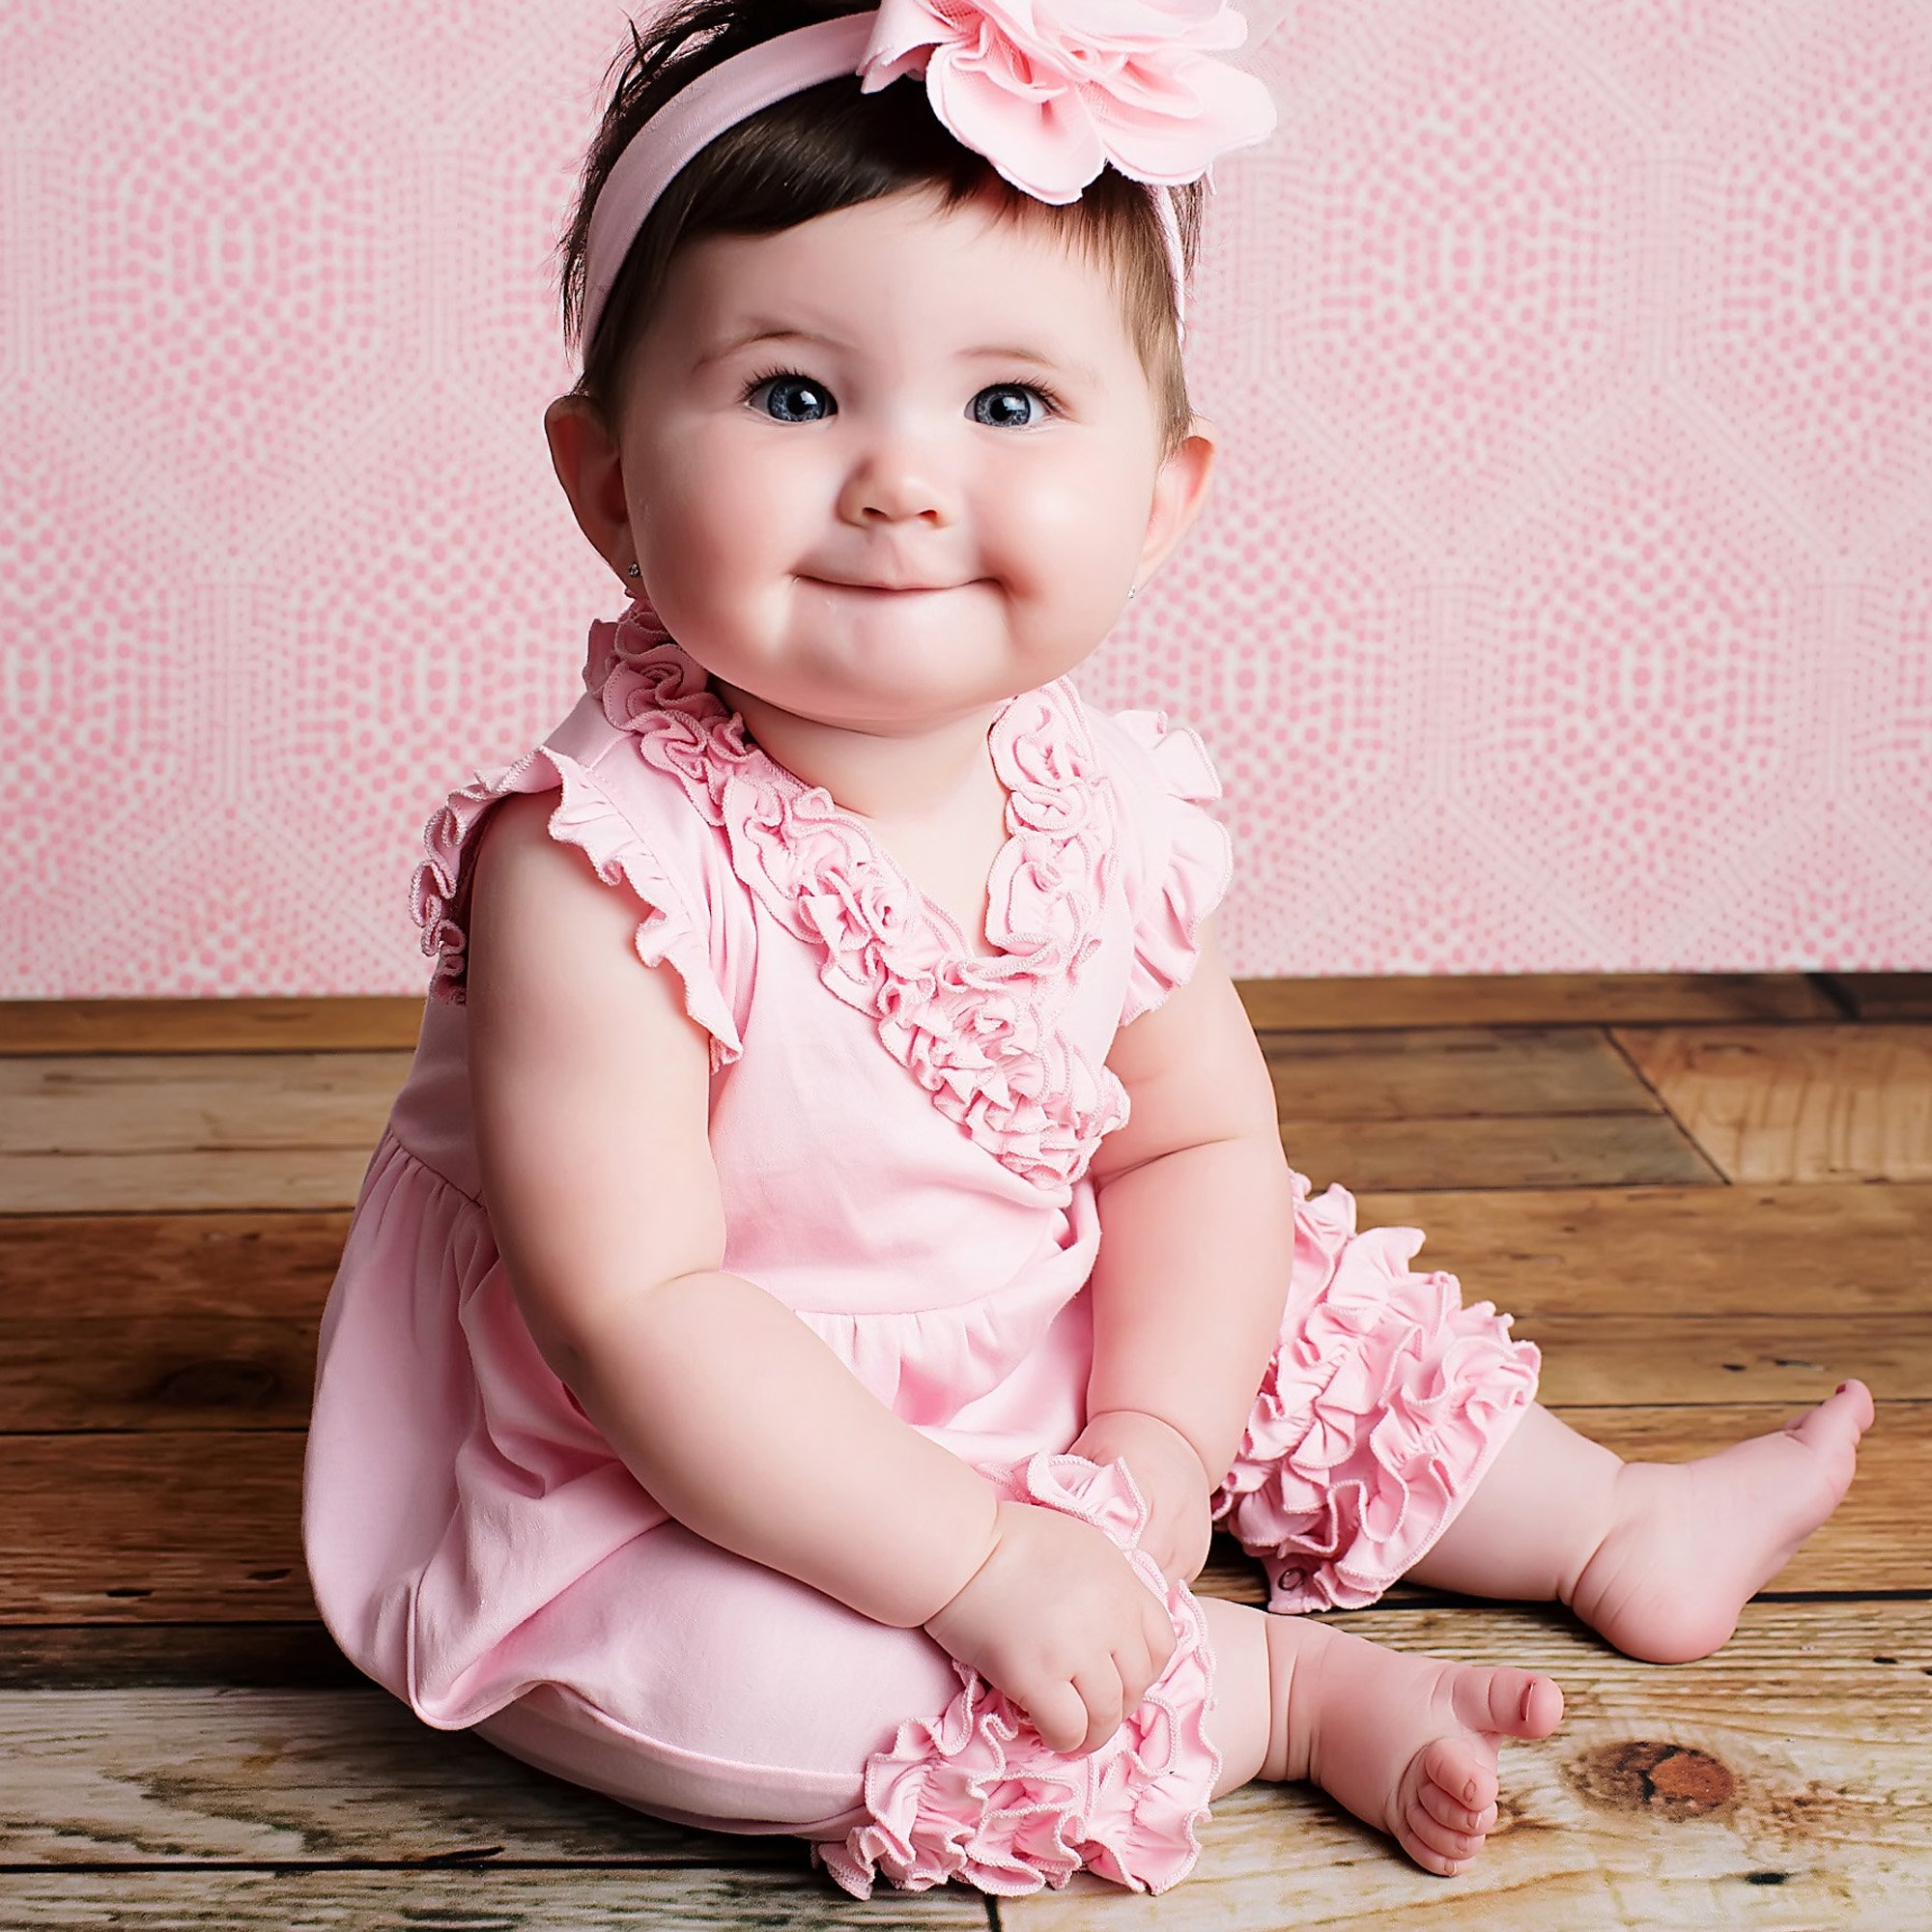 aa22981fc31 Pink Baby Girl Romper - Ava by Lemon Loves Layette